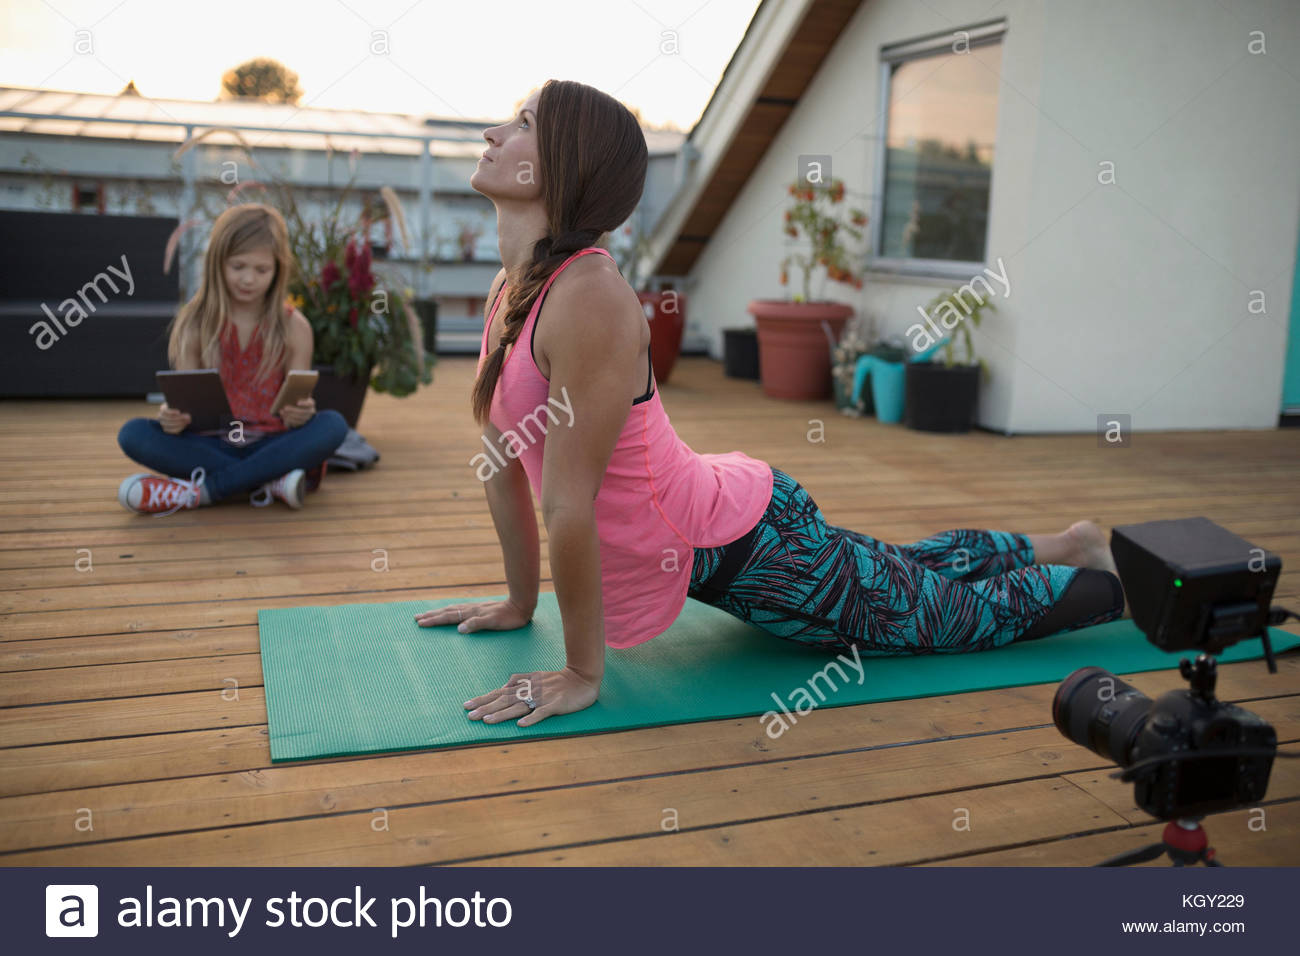 Female yoga instructor with video camera filming, vlogging upward facing dog yoga pose on patio deck - Stock Image